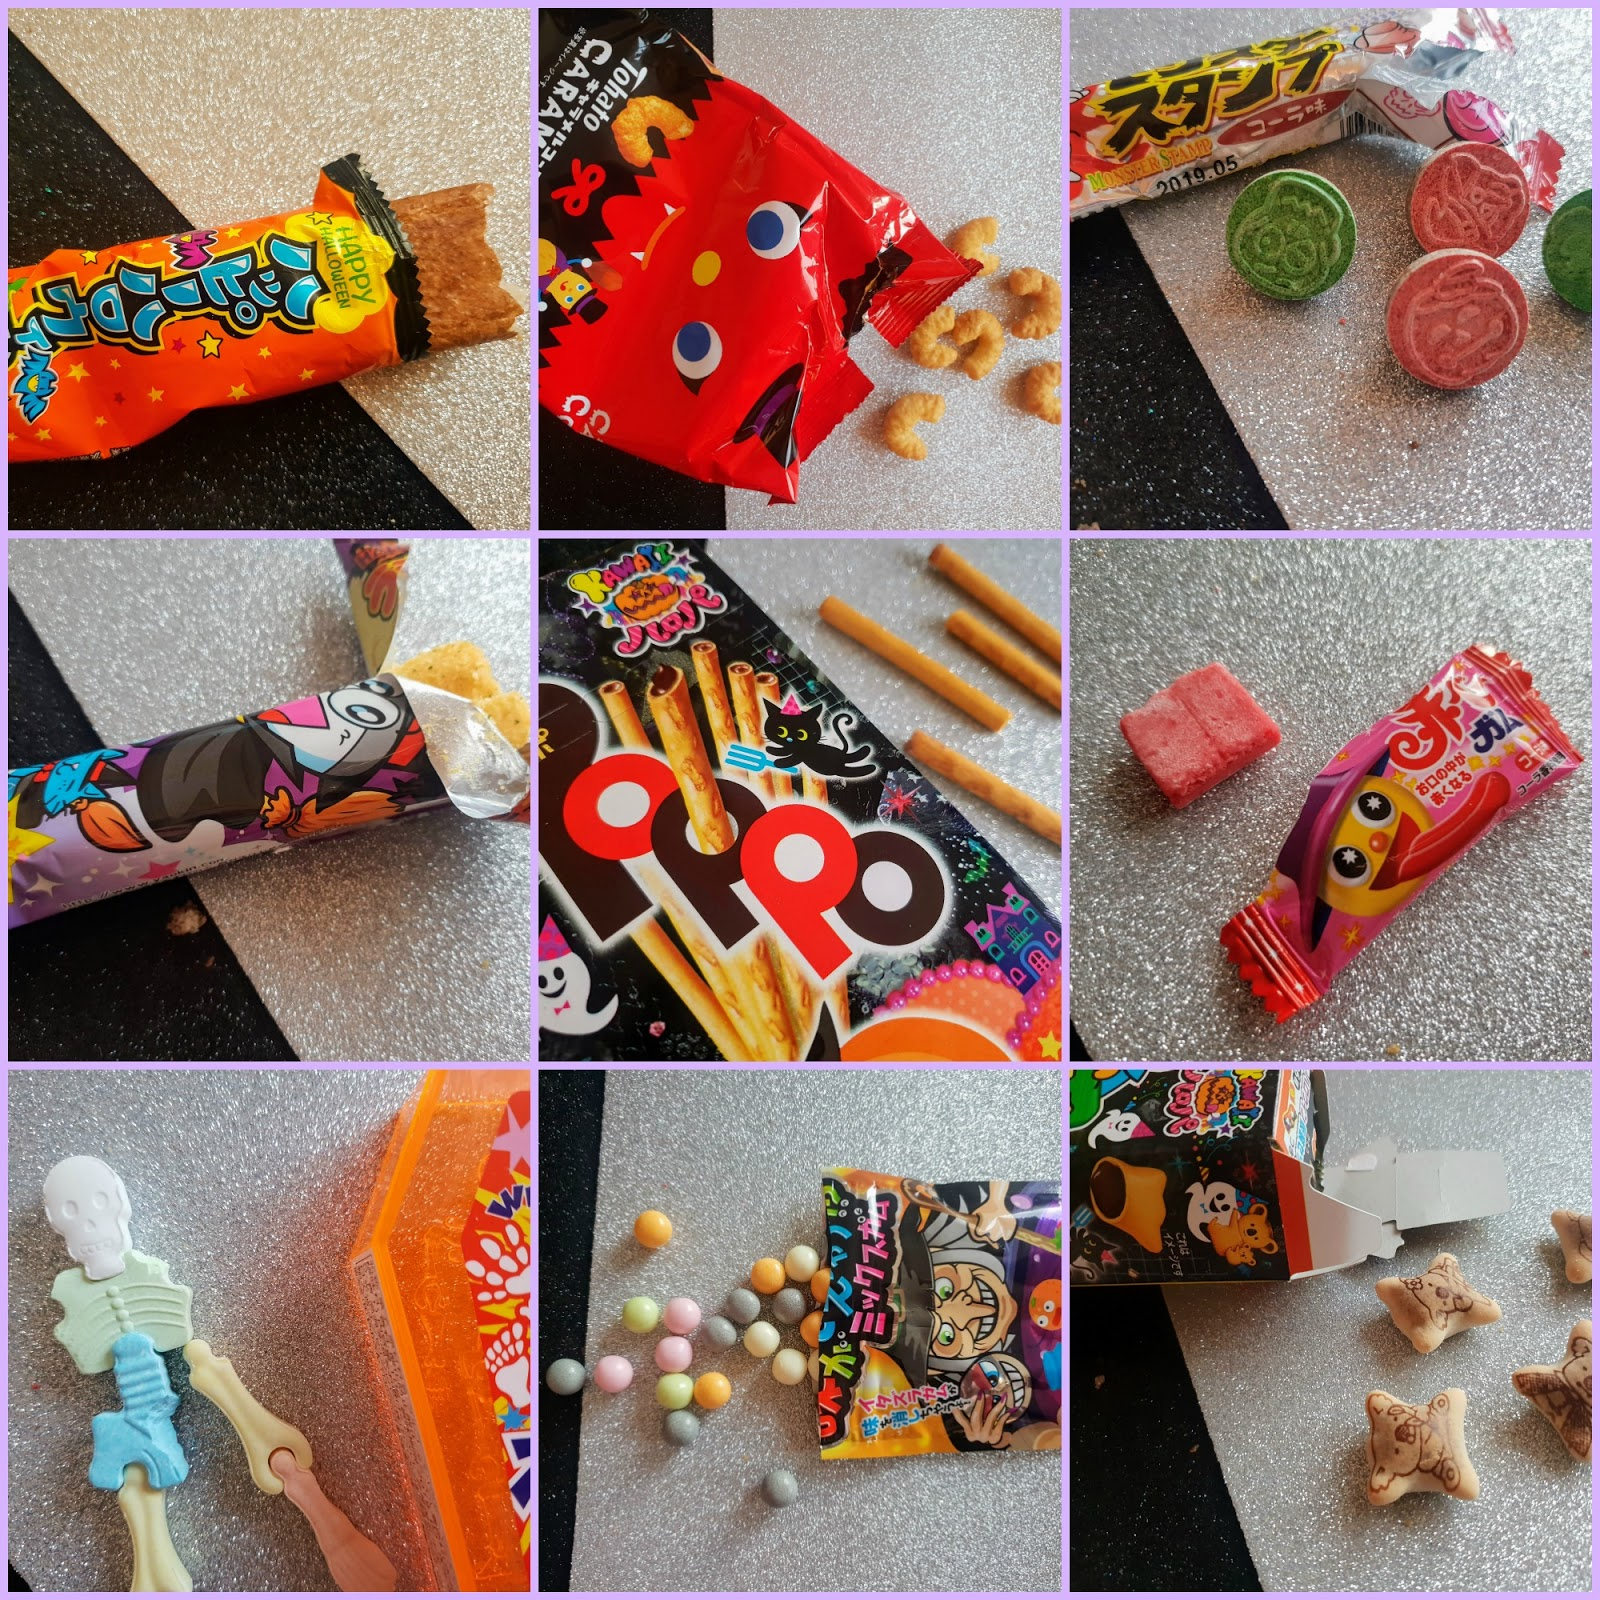 Japan Candy Box 'Halloween Edition'   Review